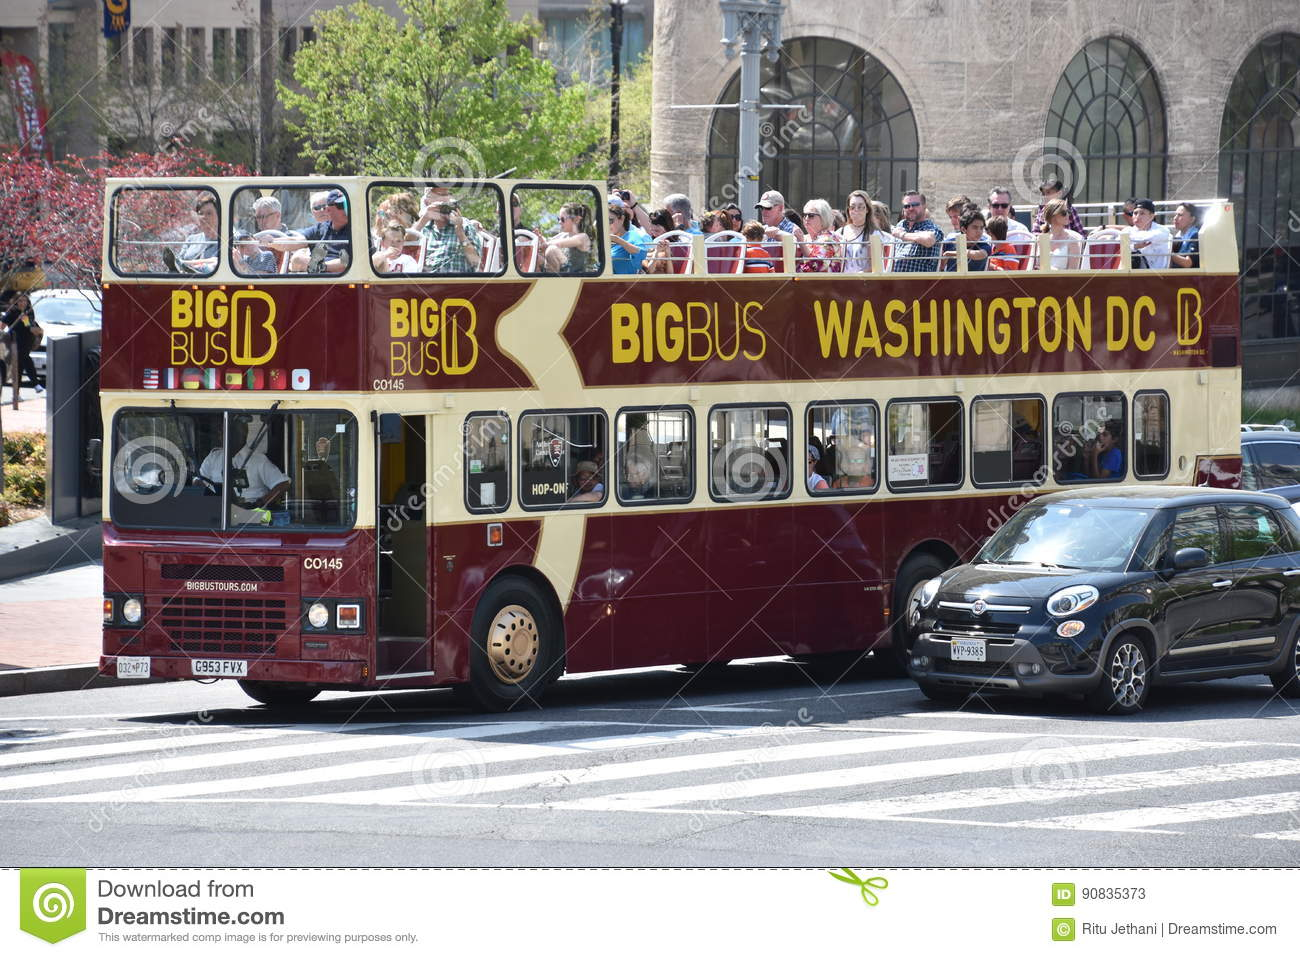 Washington Dc Tour Bus >> Big Bus Tour Bus In Washington Dc Editorial Stock Photo